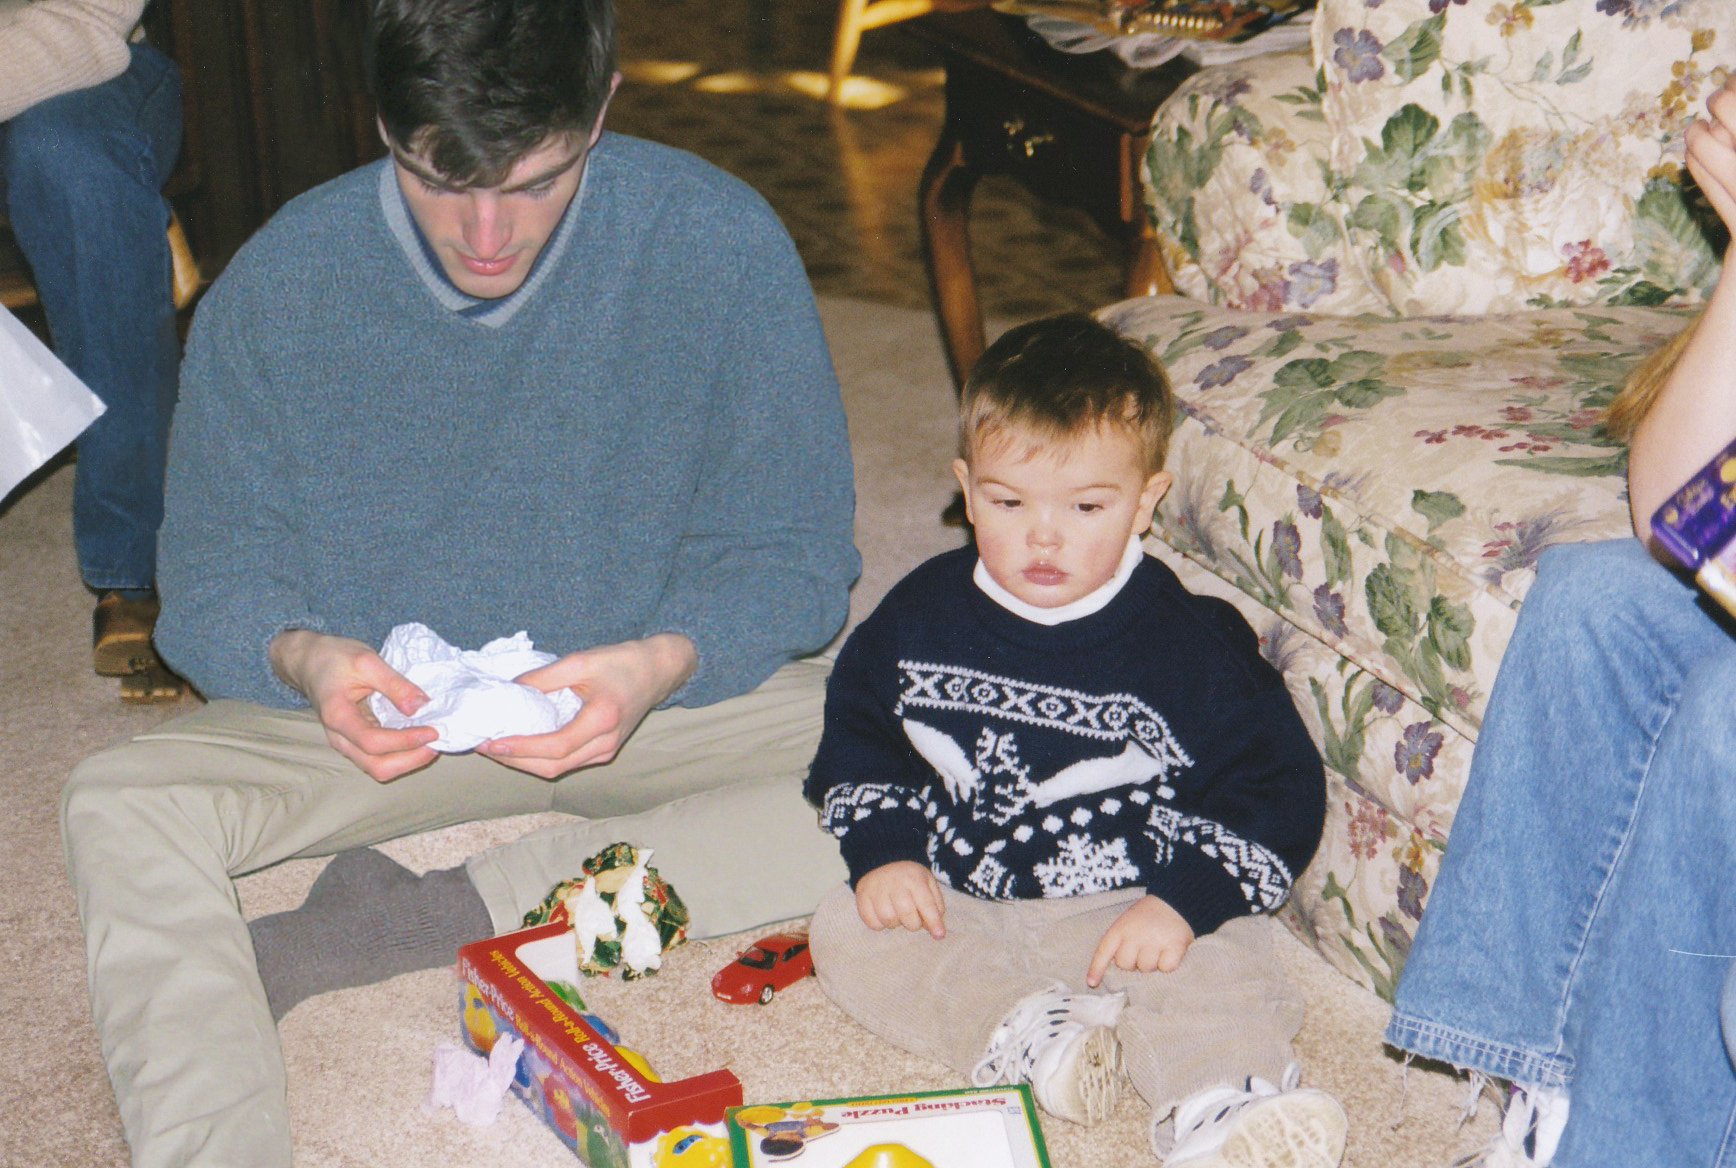 Conor and his younger self opening presents (Conor Nickerson)